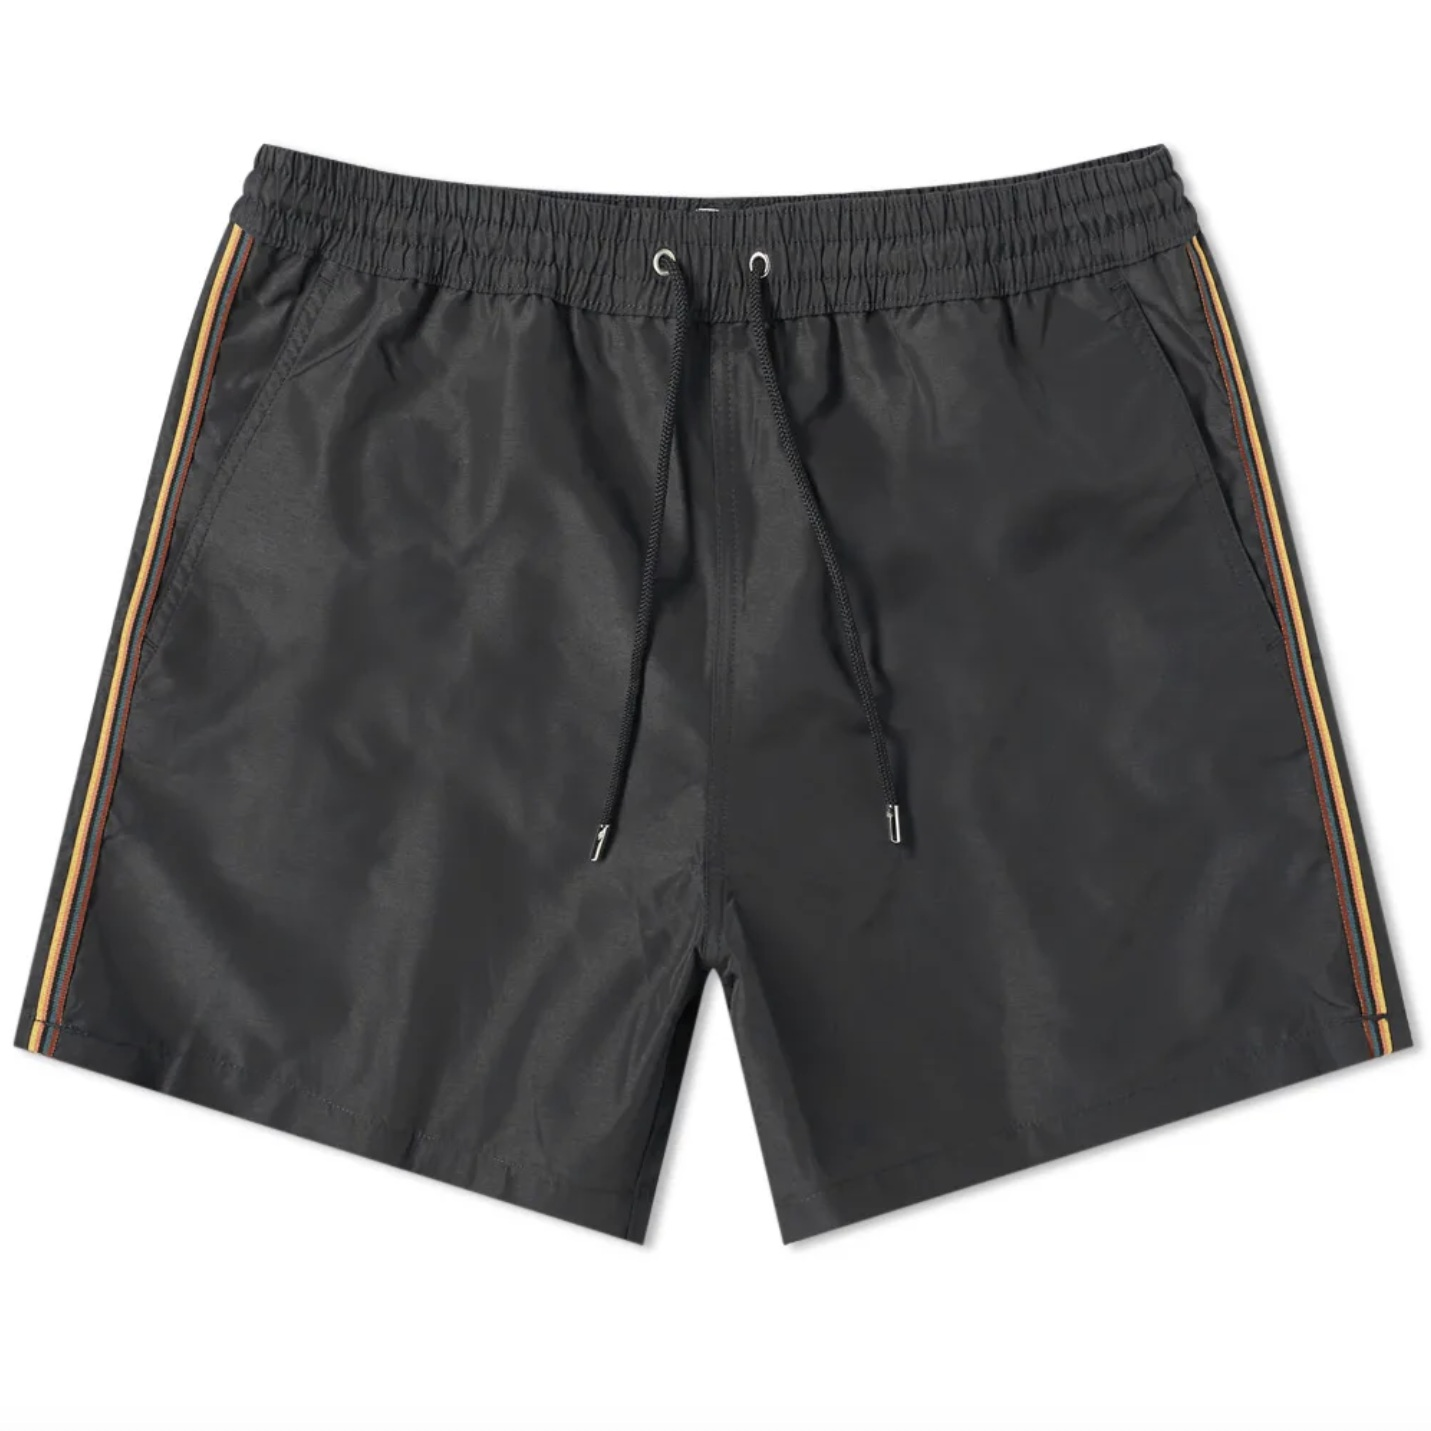 PAUL SMITH   CLASSIC SIDE STRIPE SWIMSHORTS